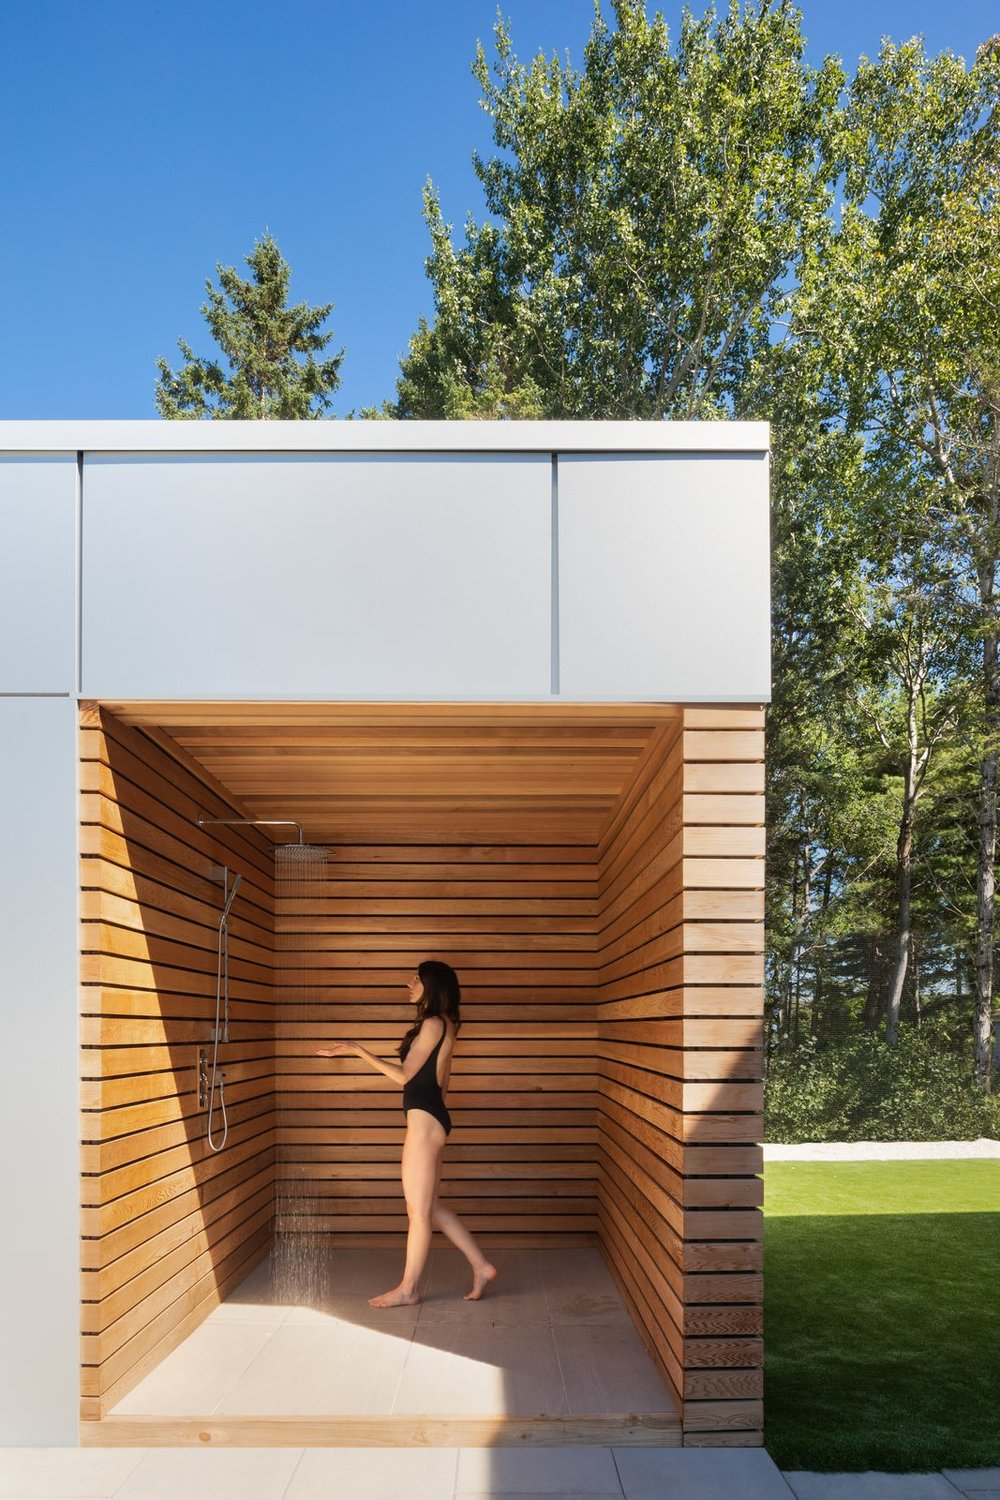 An outdoor shower offers a zen-like sanctuary to wash off the day. (Ema Peter Photography)